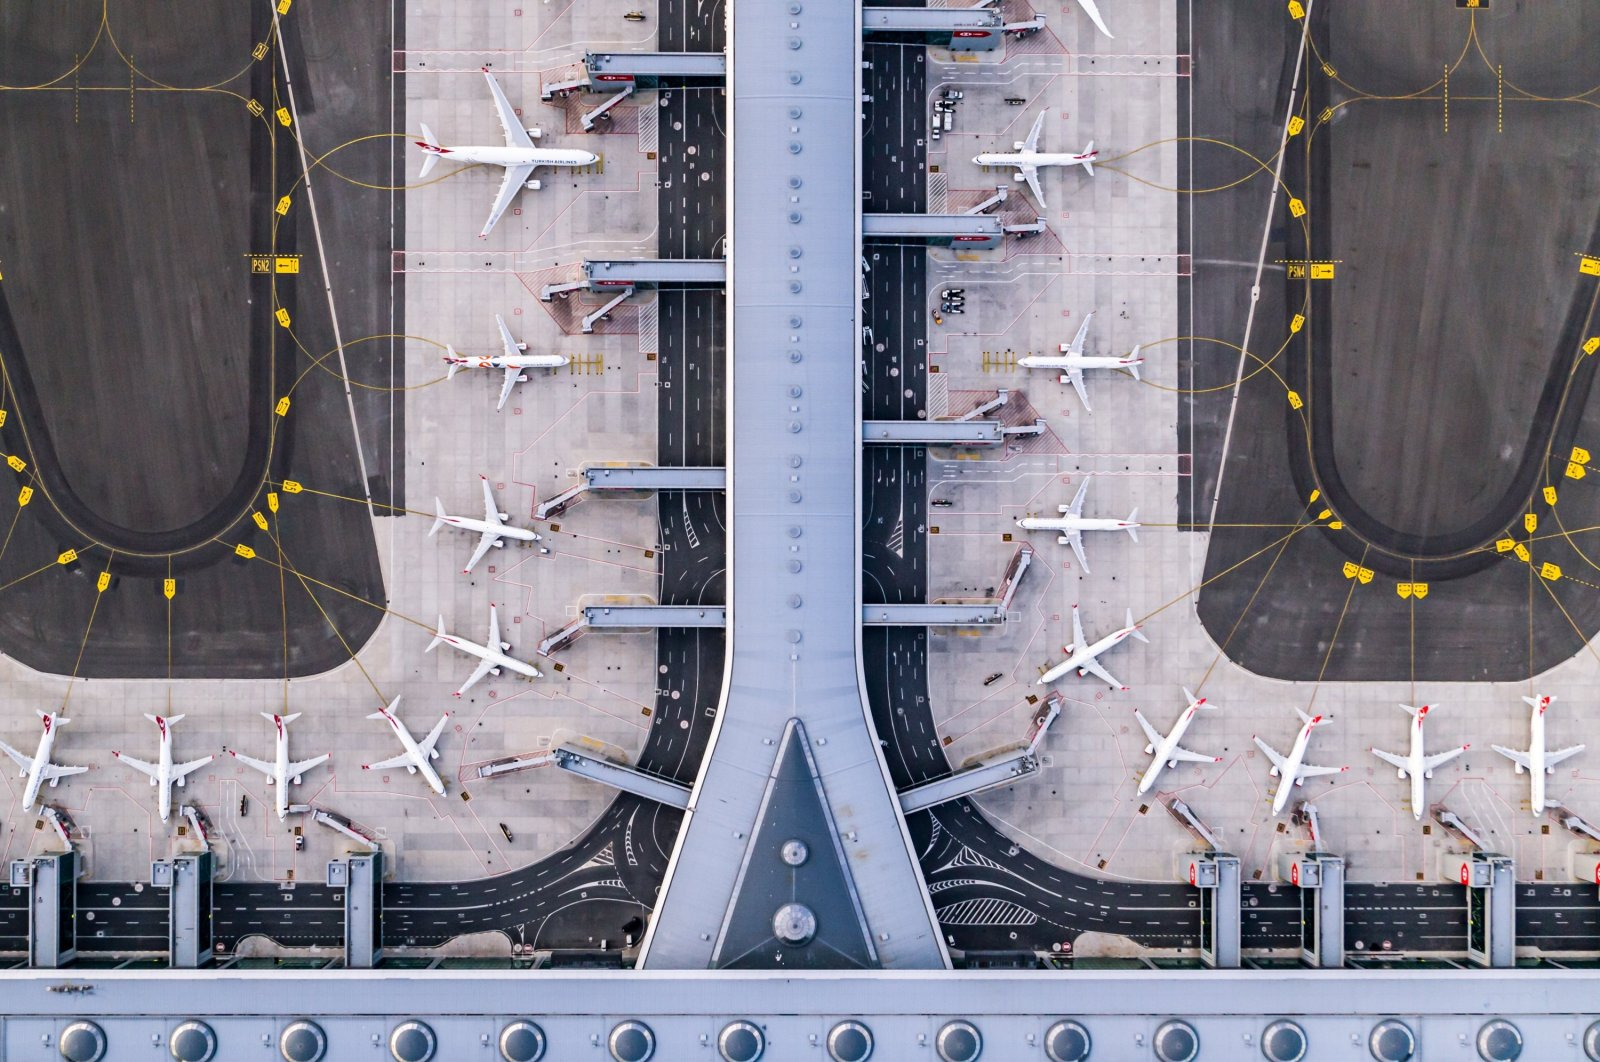 Drone footage provided on Dec. 15, 2020 shows planes parked at Istanbul Airport, Istanbul, Turkey. (Courtesy of Istanbul Airport operator IGA)